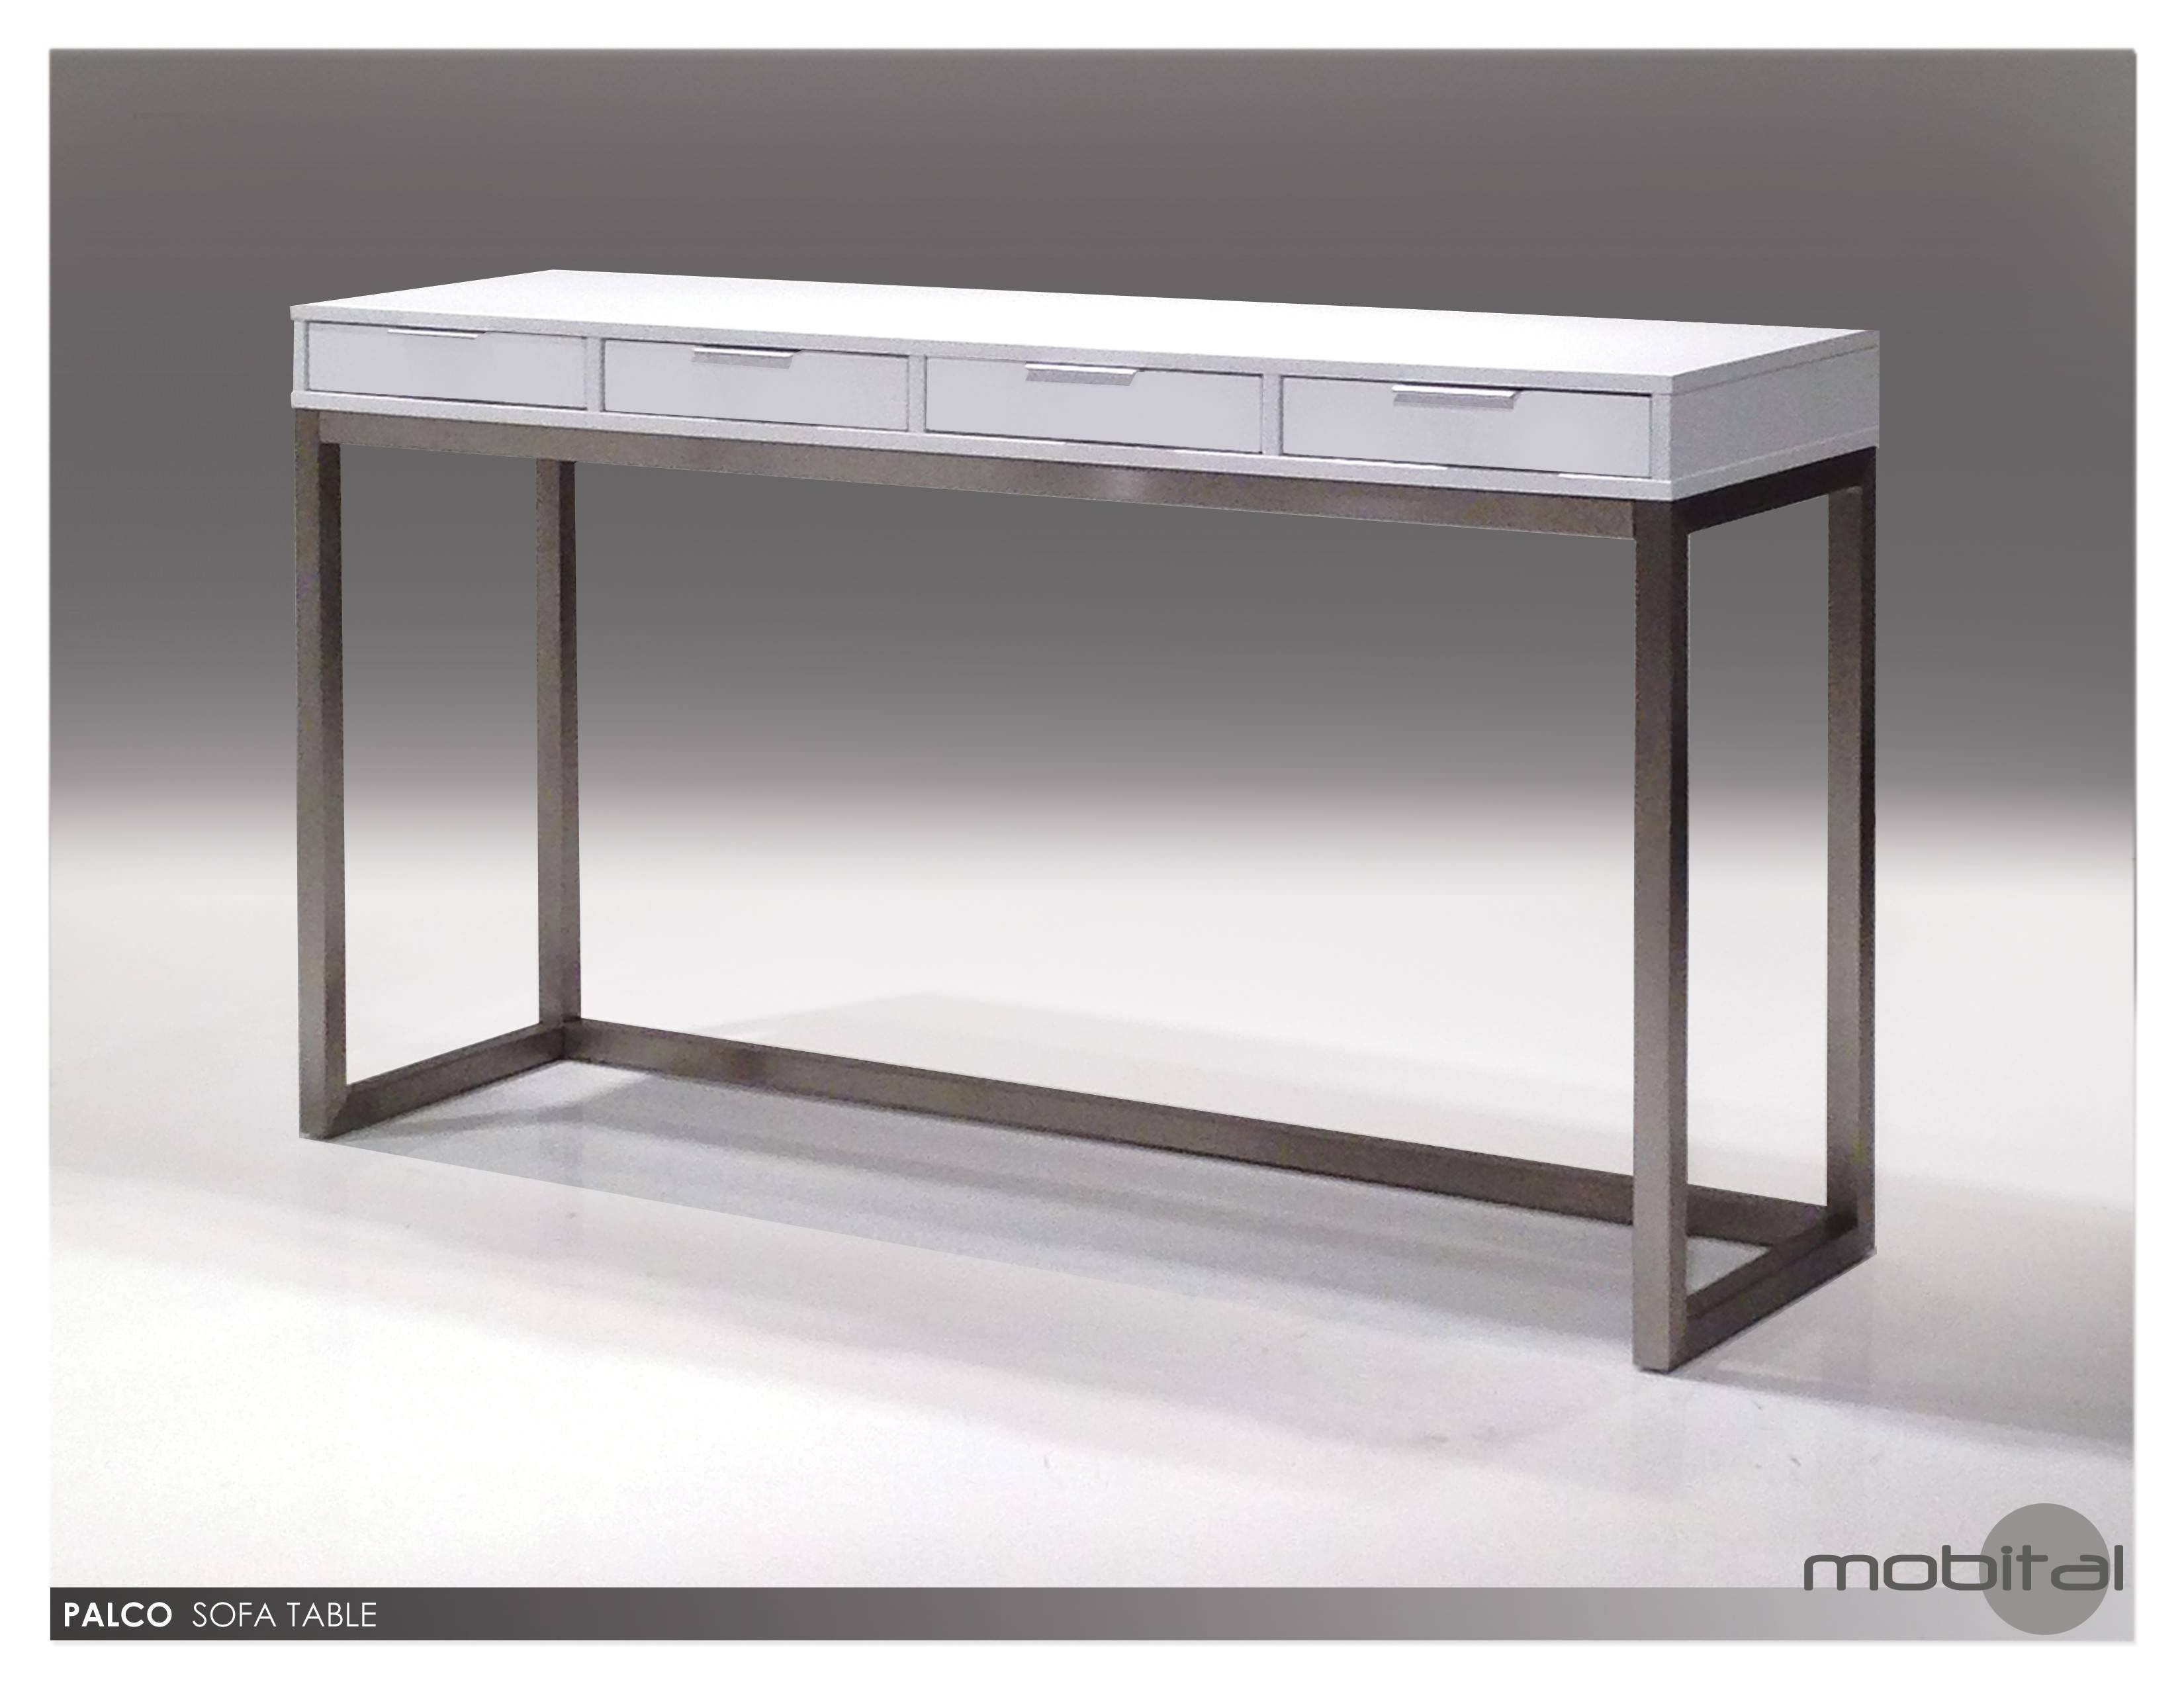 Sofas Center : Narrow Table Sofa Tables Gray With Drawers Rustic within Sofa Table Drawers (Image 28 of 30)